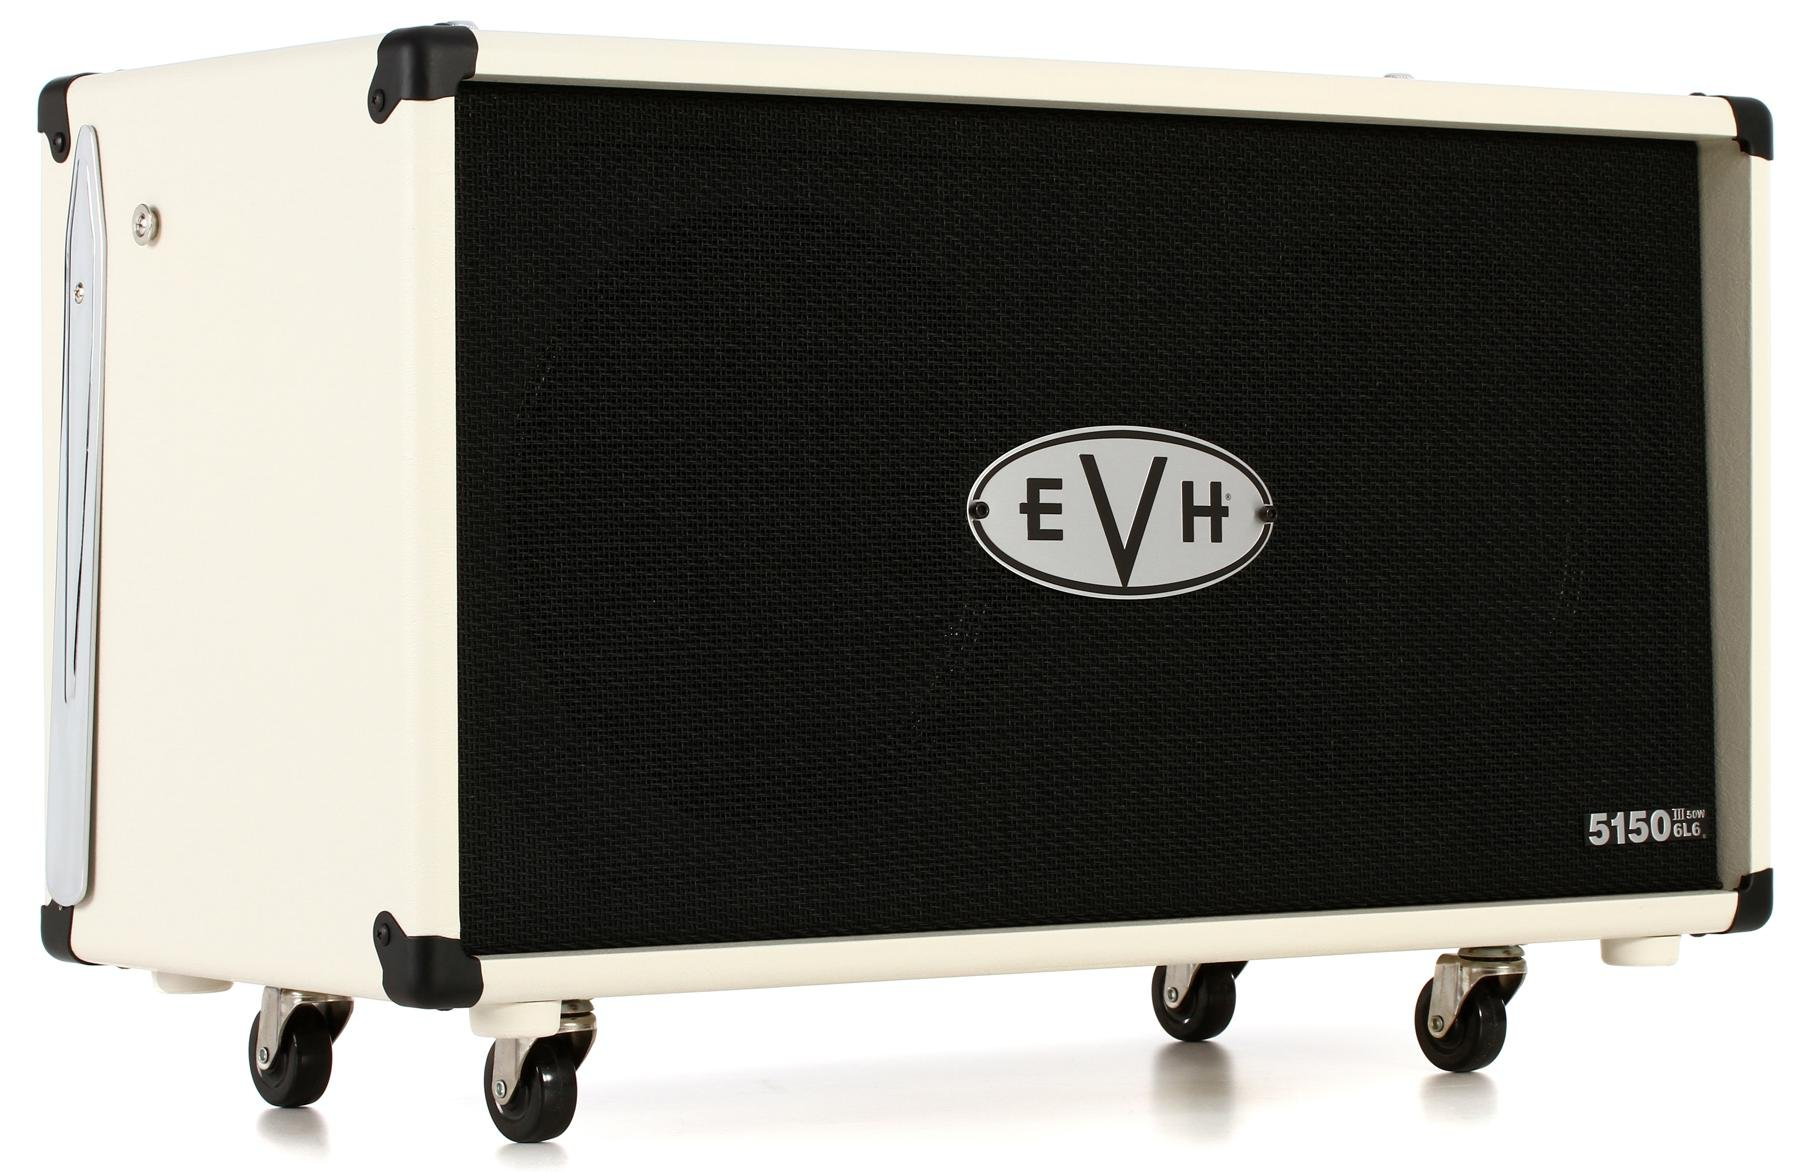 Evh 5150 Iii 2x12 60 Watt Extension Cabinet Ivory Sweetwater Htv 212 Further Parallel Speaker Wiring Guide On 8 Ohm